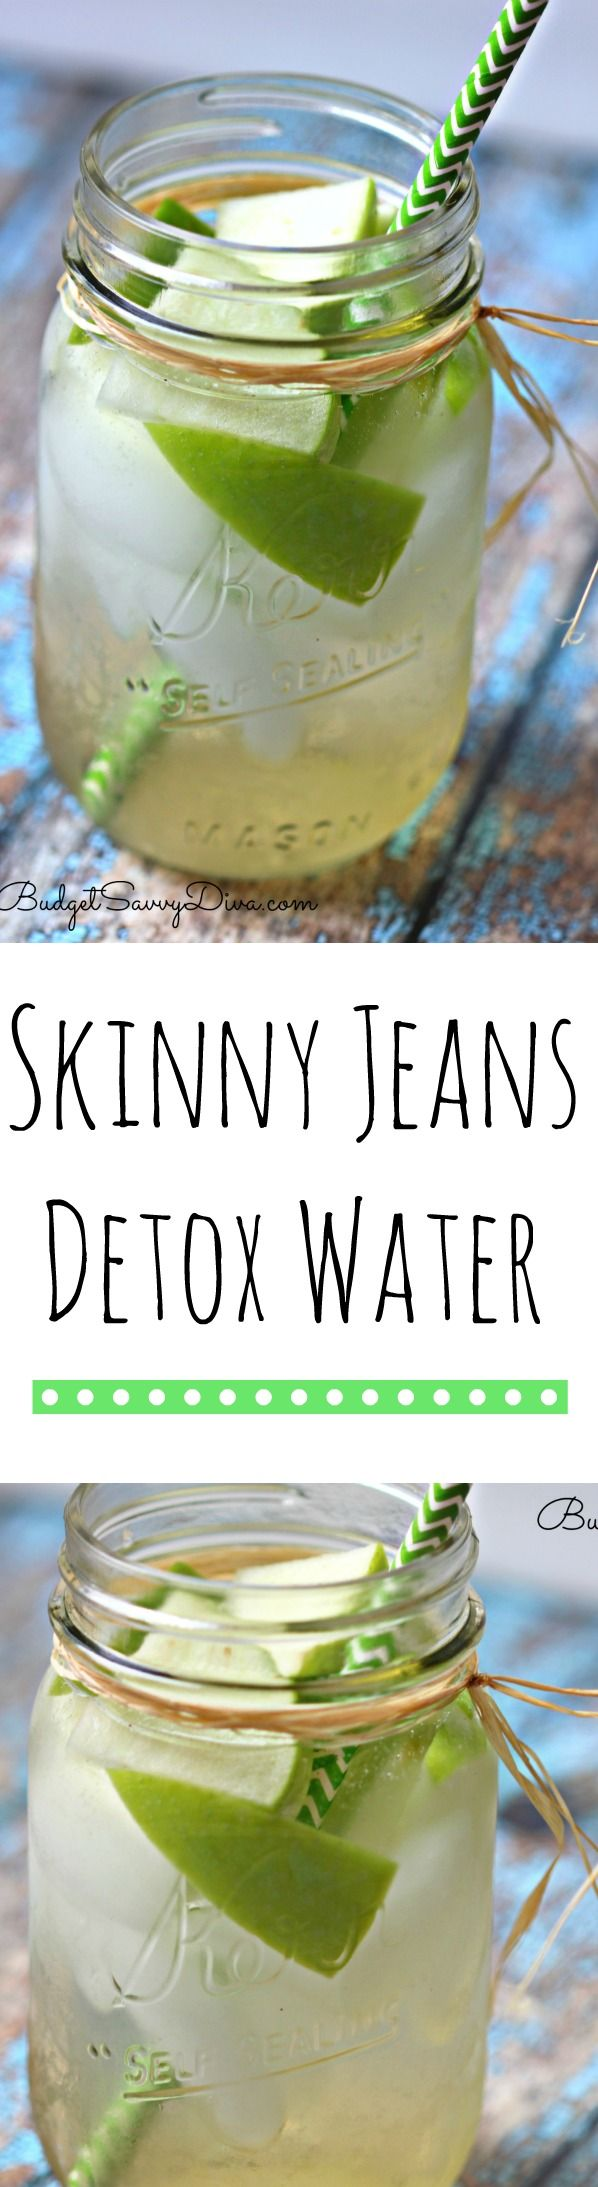 Skinny+Jeans+Detox+Water+Recipe